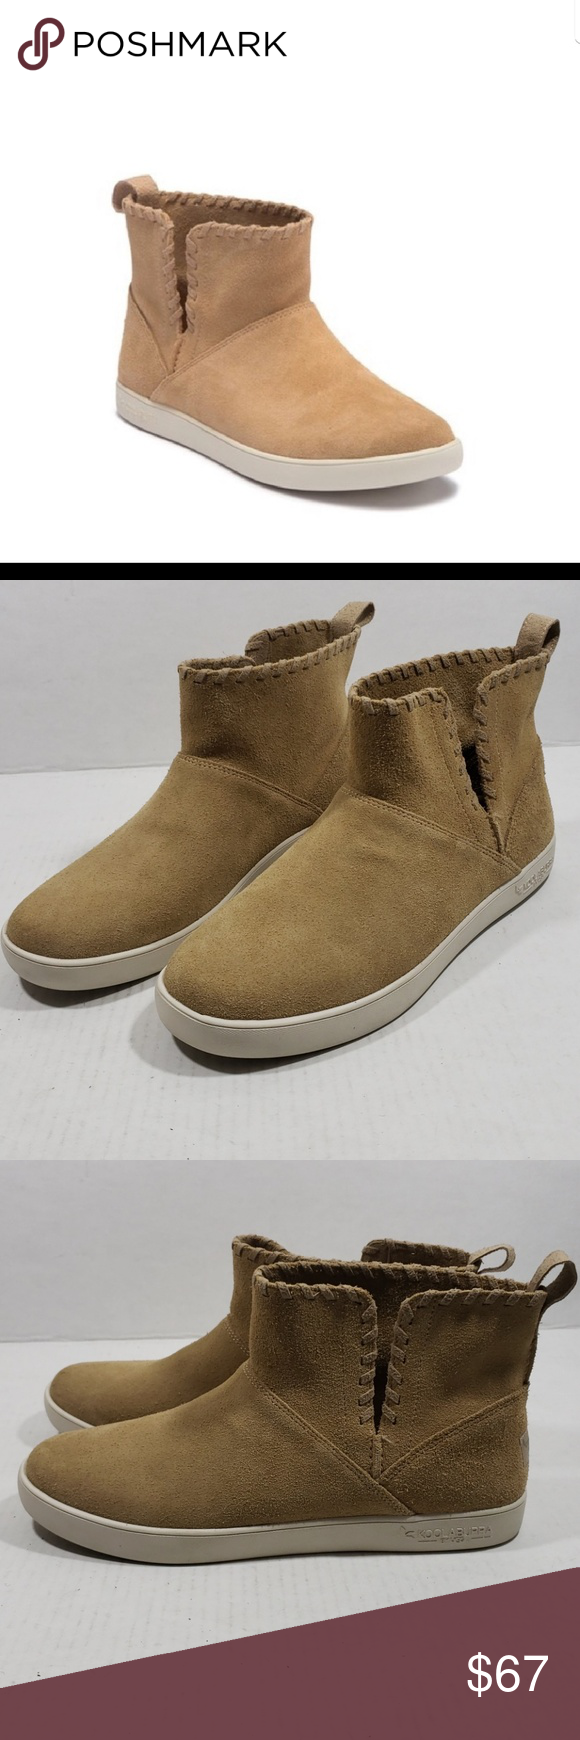 7543a9cb1e3 Ugg Suede Koolaburra Rylee Slip On Boots sz 11 New without box NWOB ...